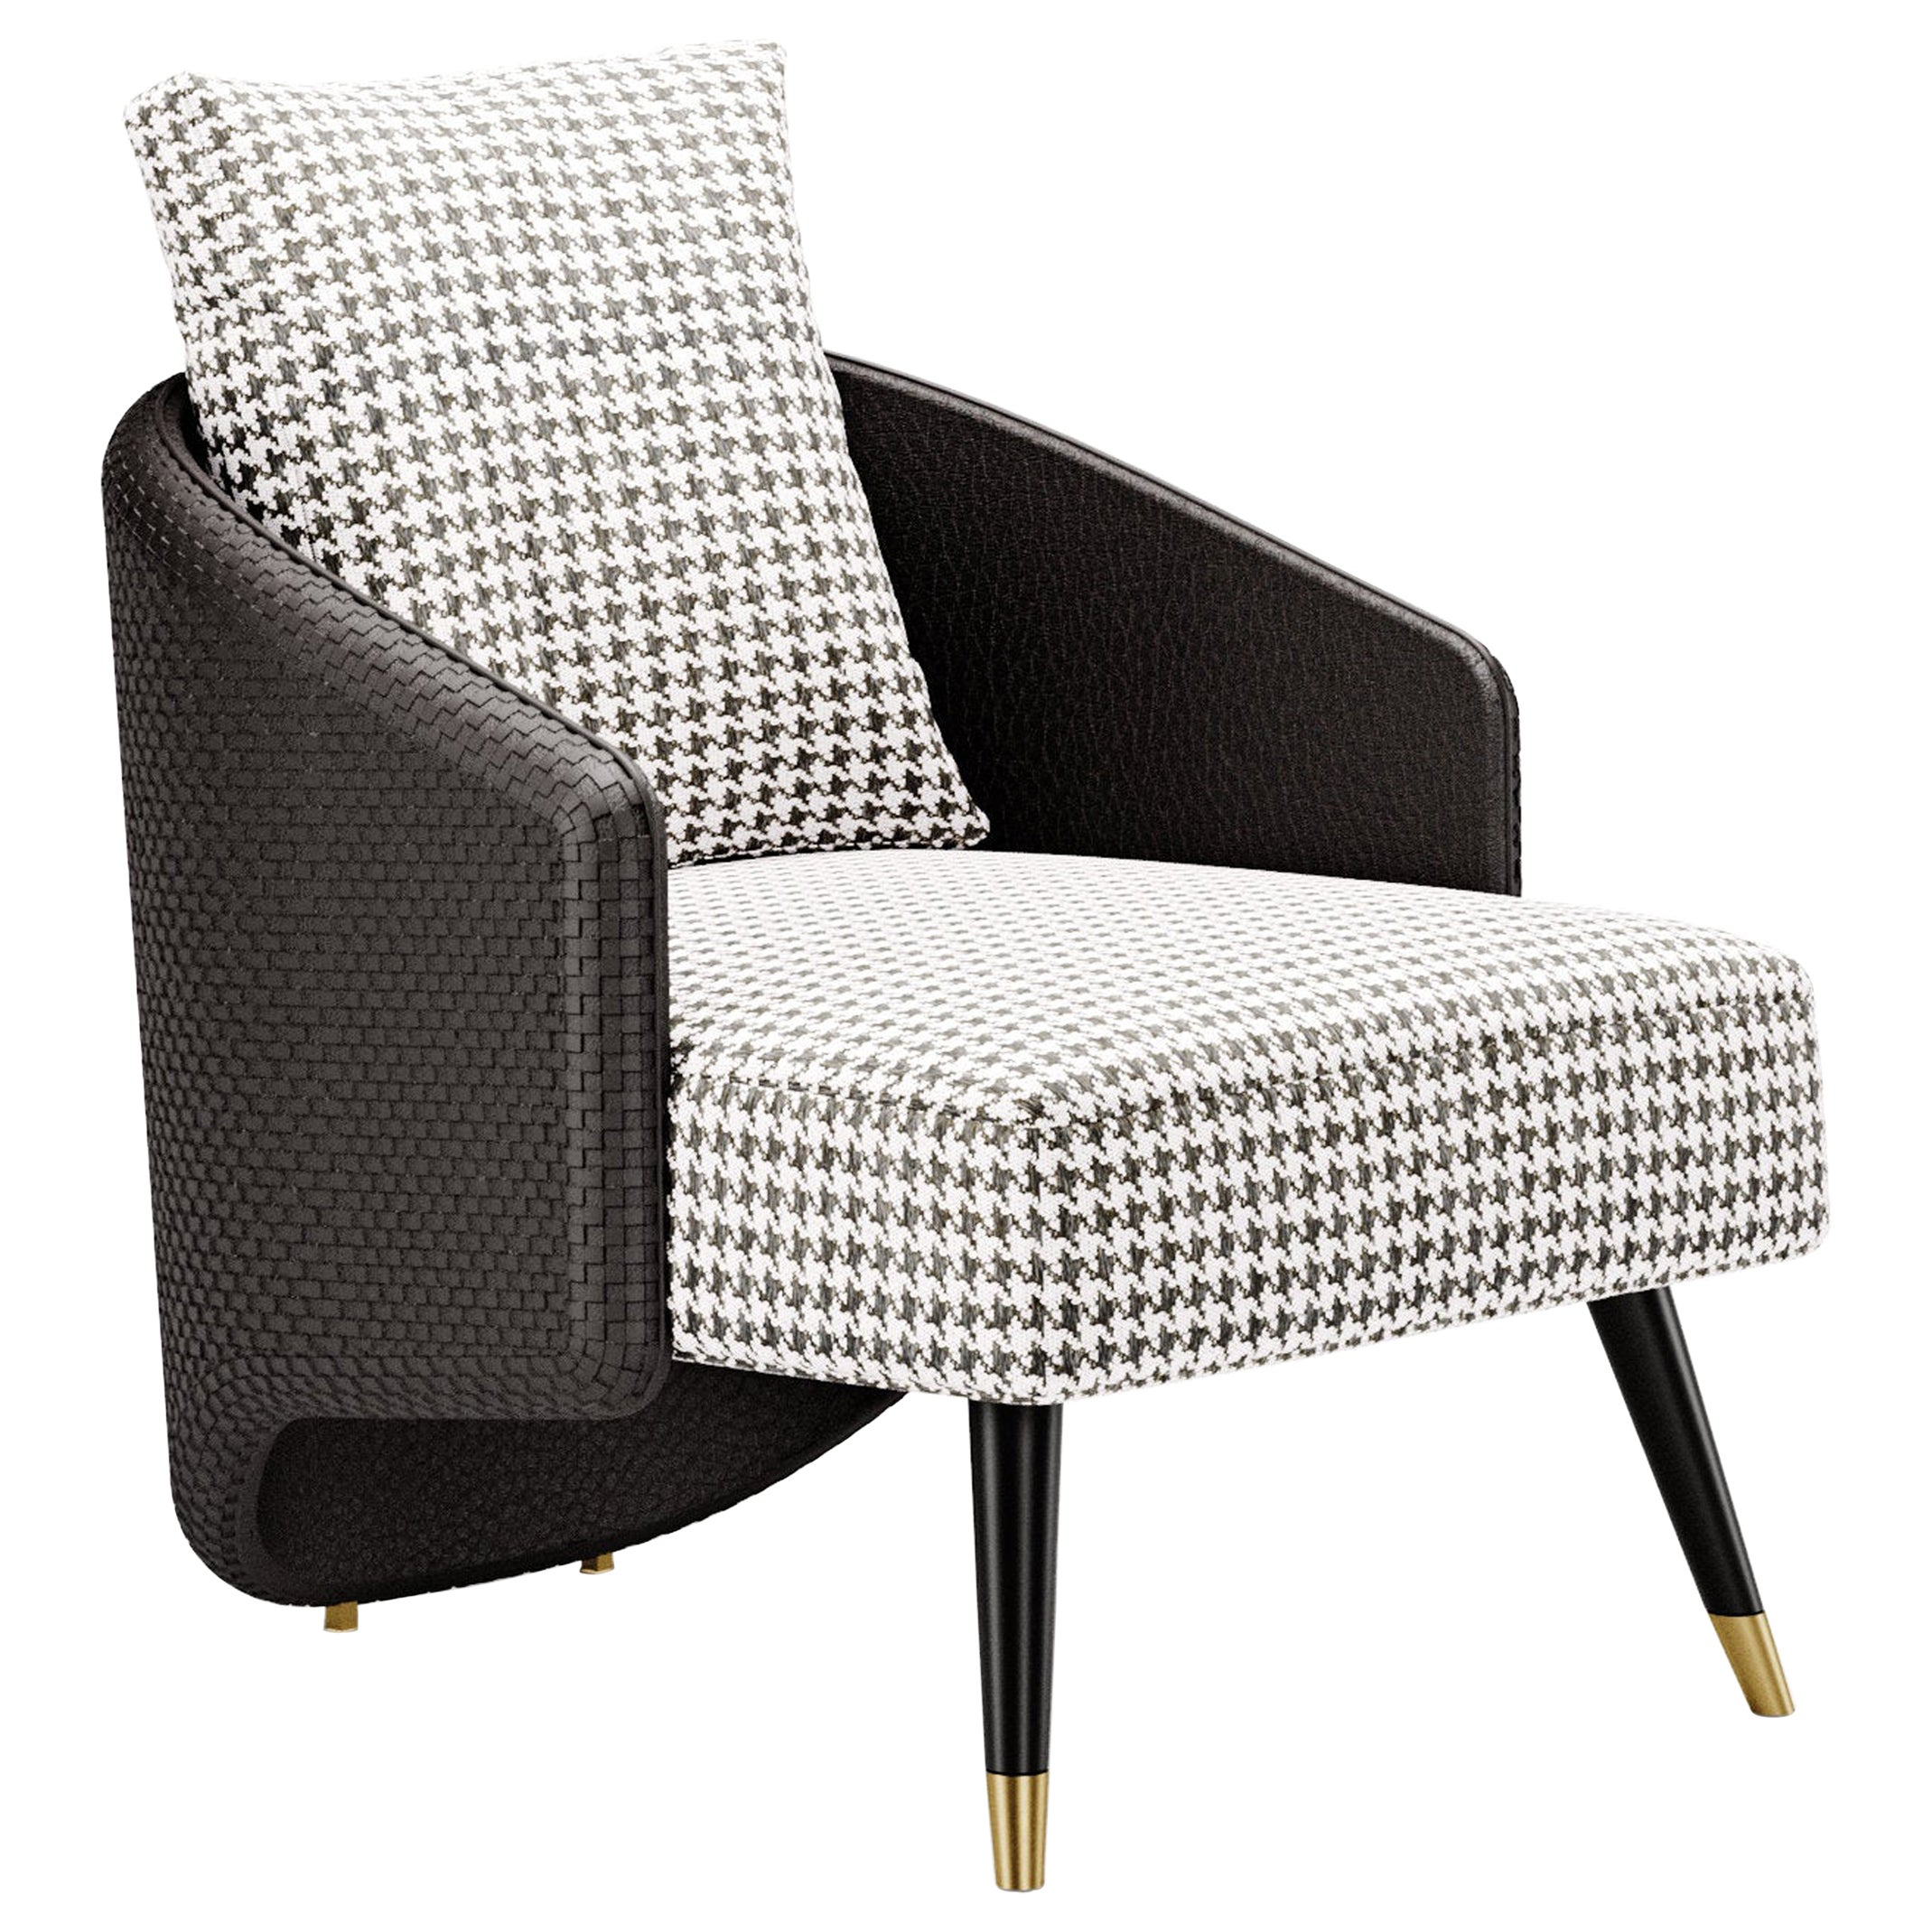 Contemporary Chair by Fabio Arcaini Settee Fabric Leather Nabuk